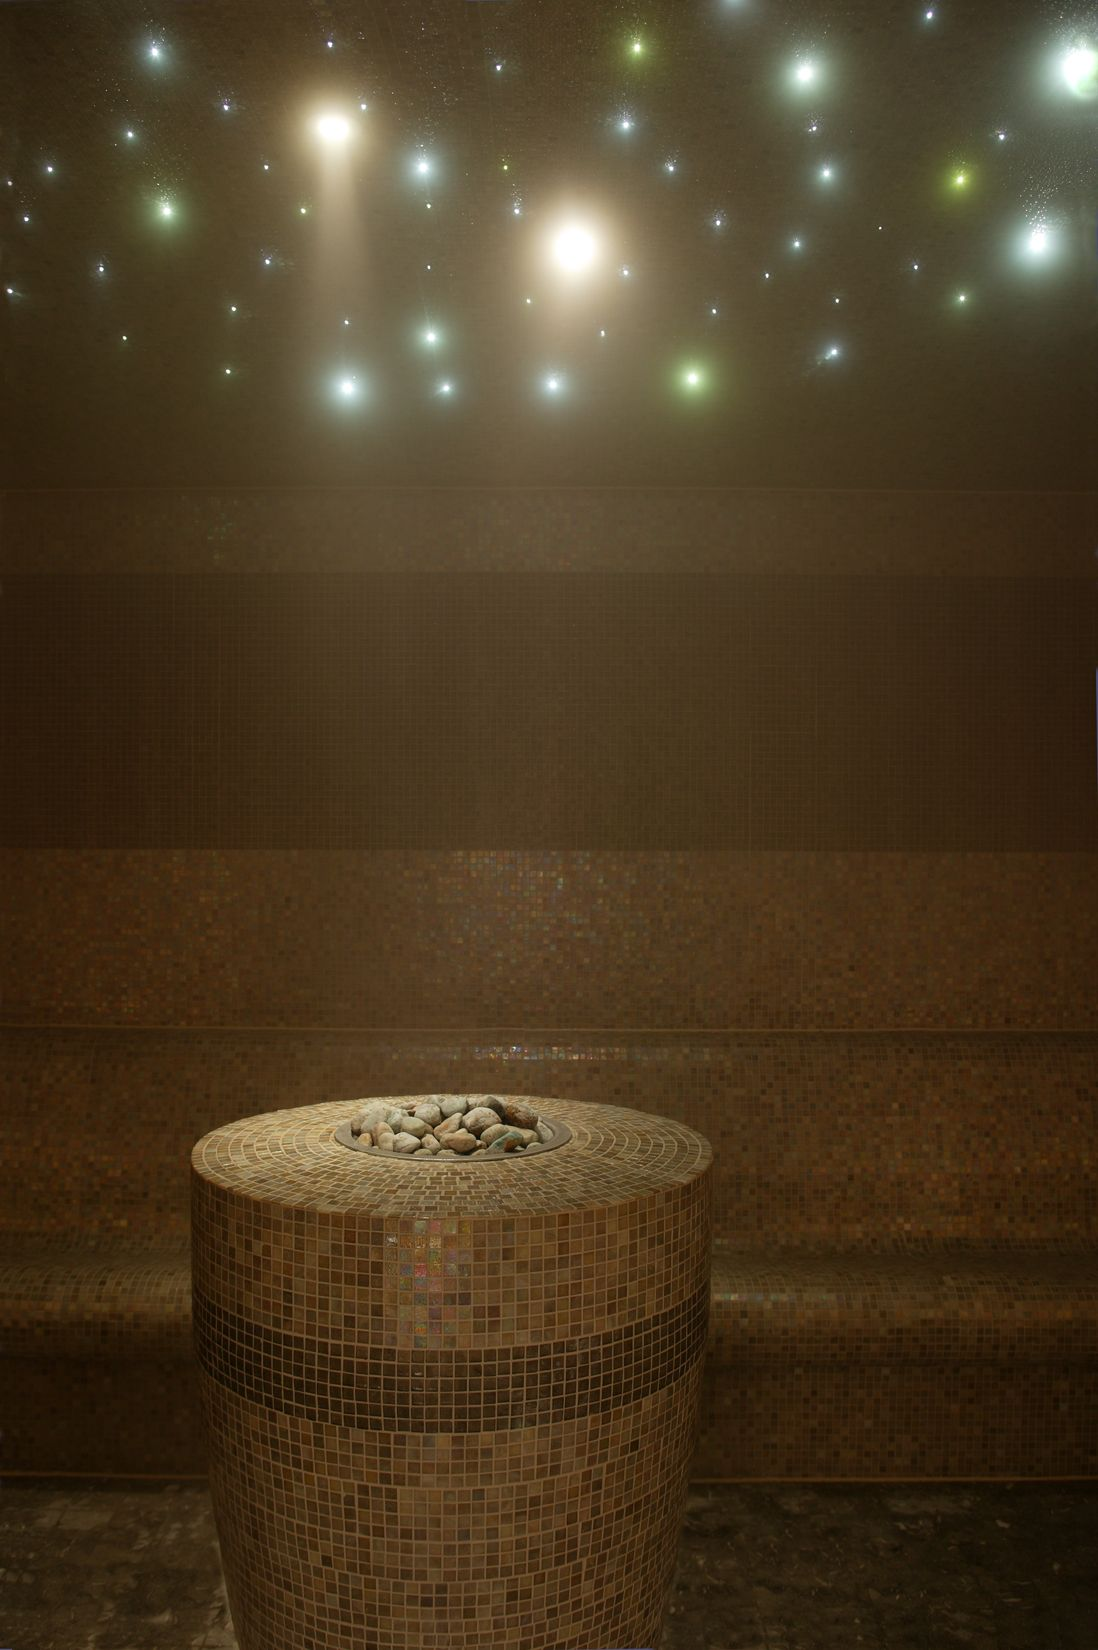 Ohh Steam Room With Led Lights That Change Colors How Relaxing Spa Steamroom Spa Rooms Steam Room Spa Interior